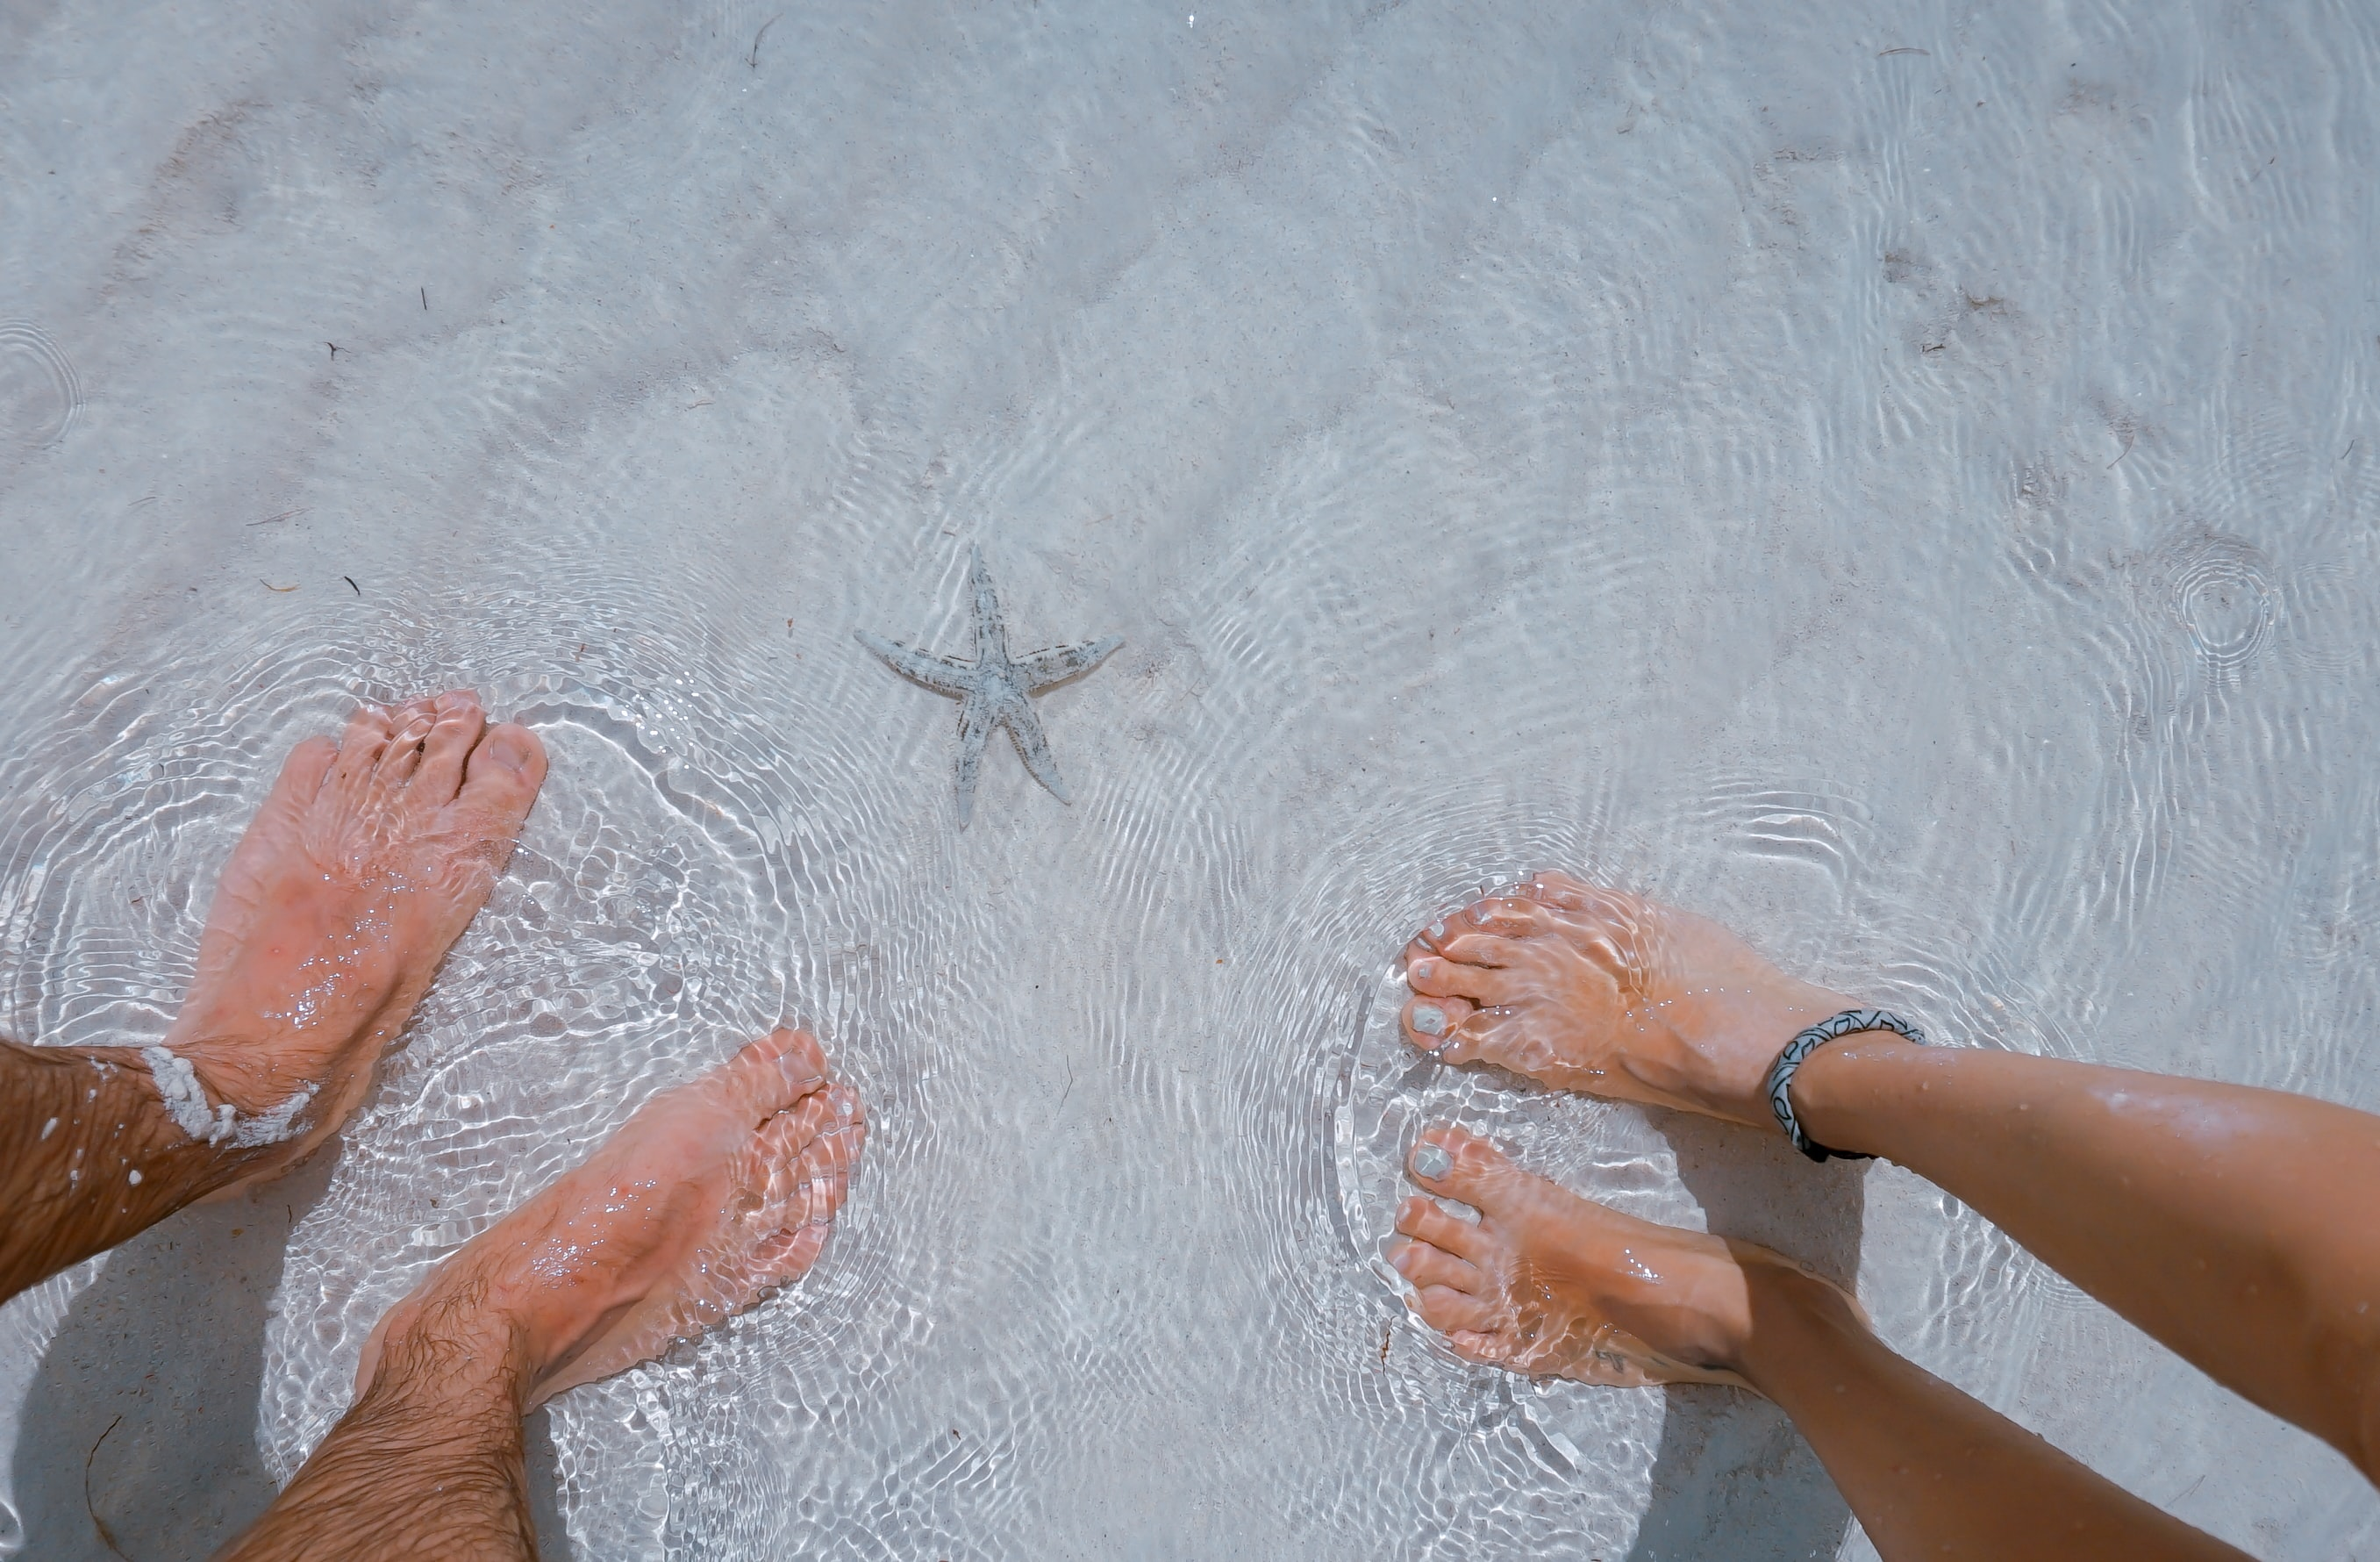 Two people's feet in the sea, next to a starfish